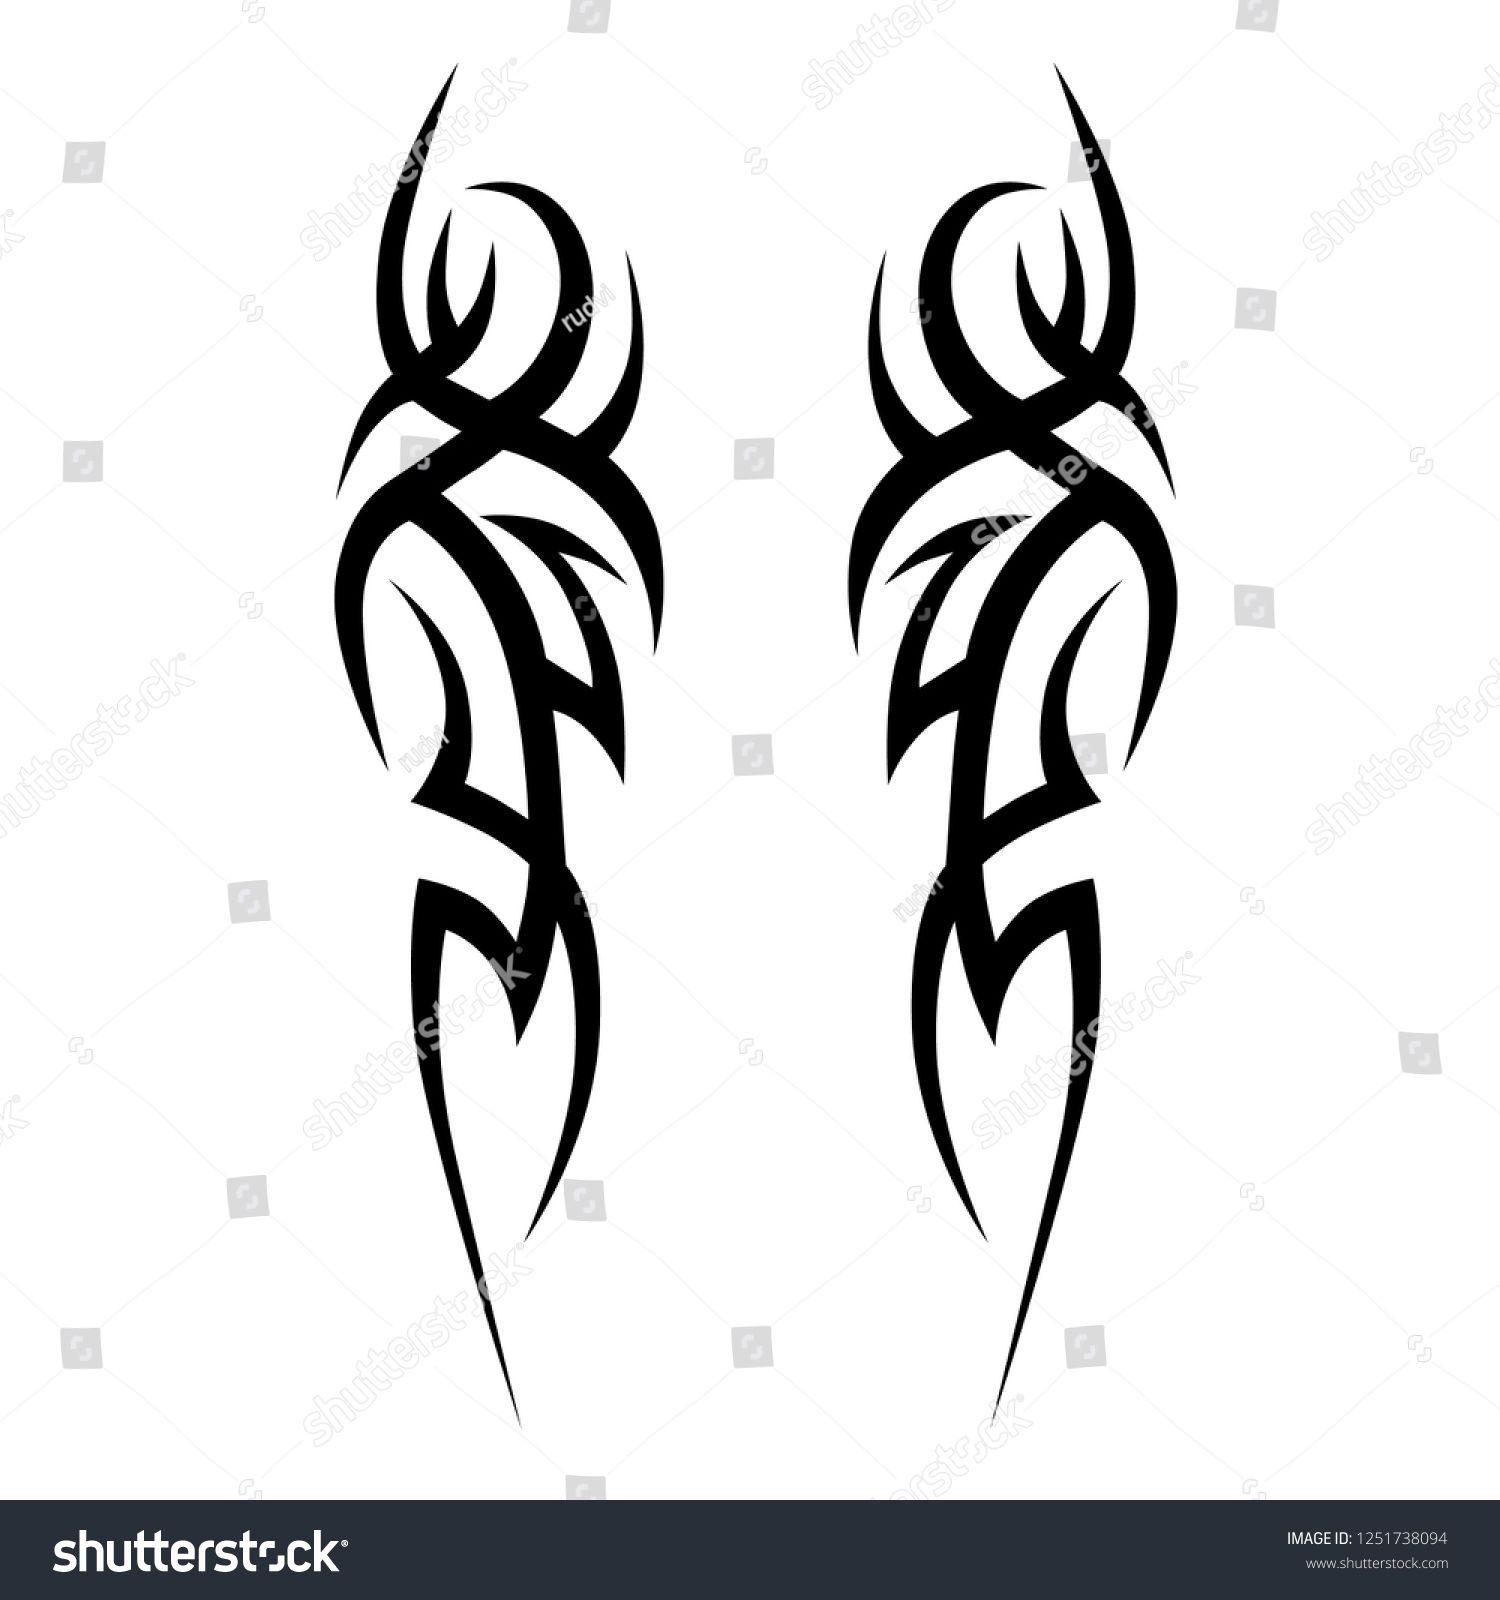 Tribal Tattoos Designs Tattoo Arm Sleeve Ideas Vector Sketch Illustration On White Backgrou Tribal Tattoos Tribal Art Tattoos Tribal Tattoo Designs